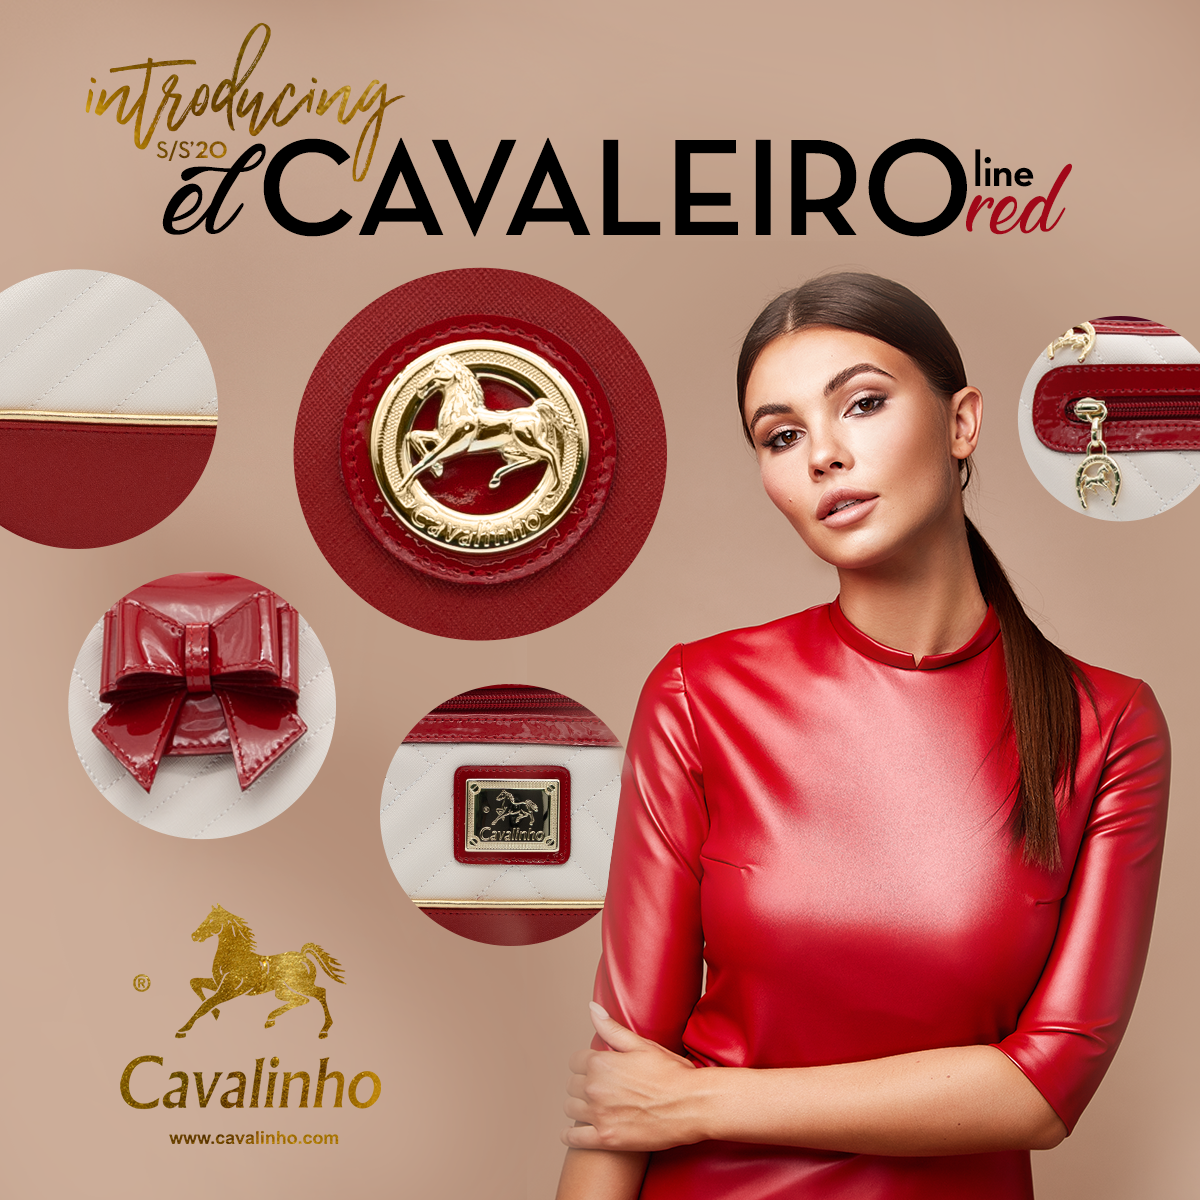 elcavaleiro_red_01